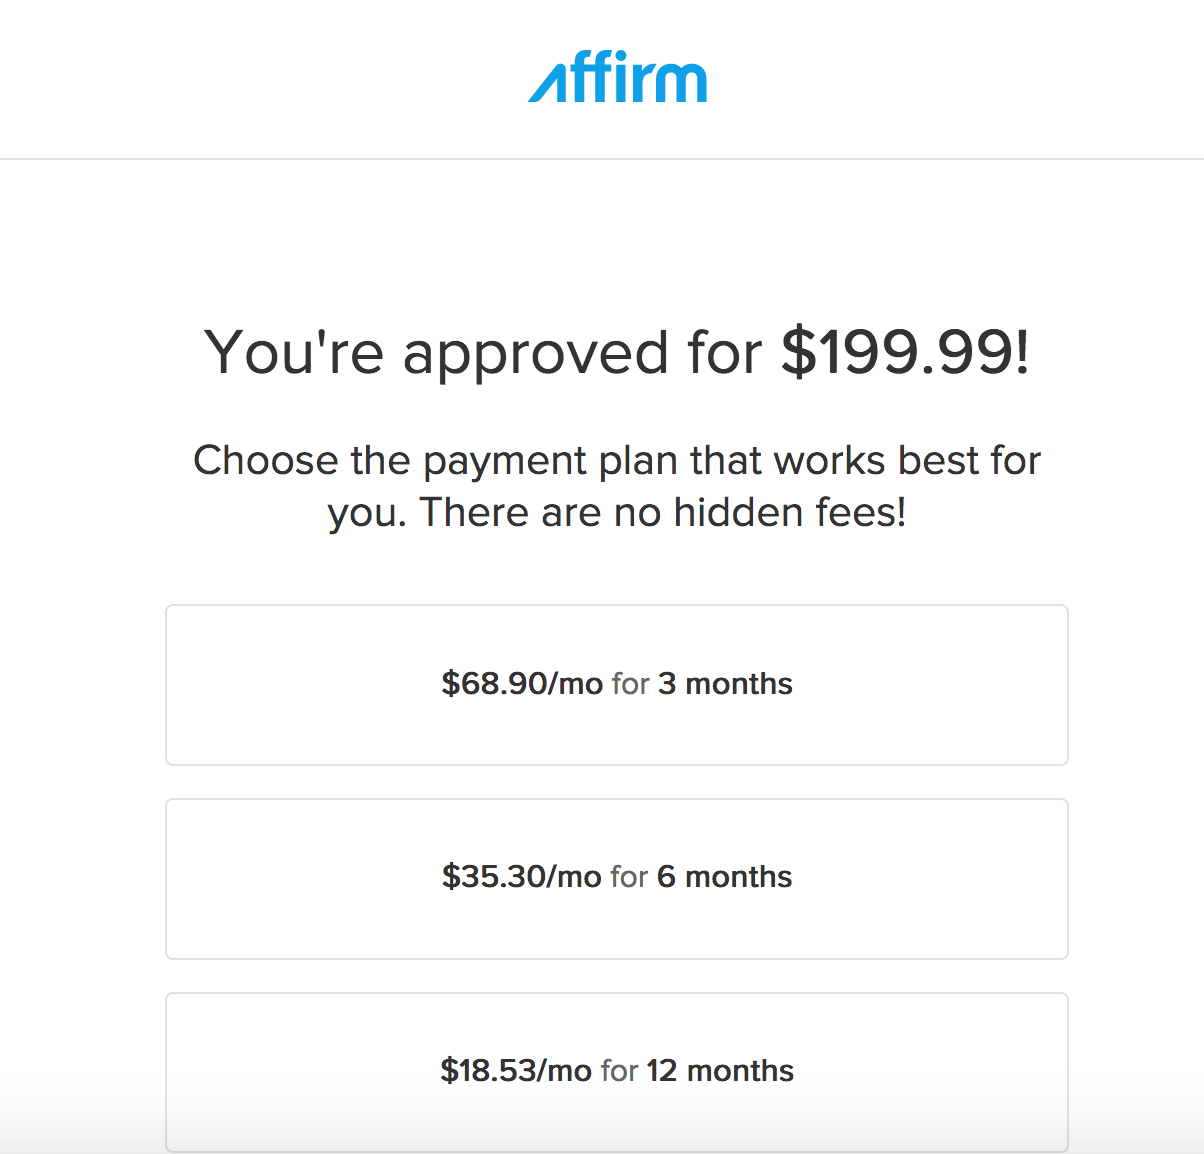 Affirm approval process